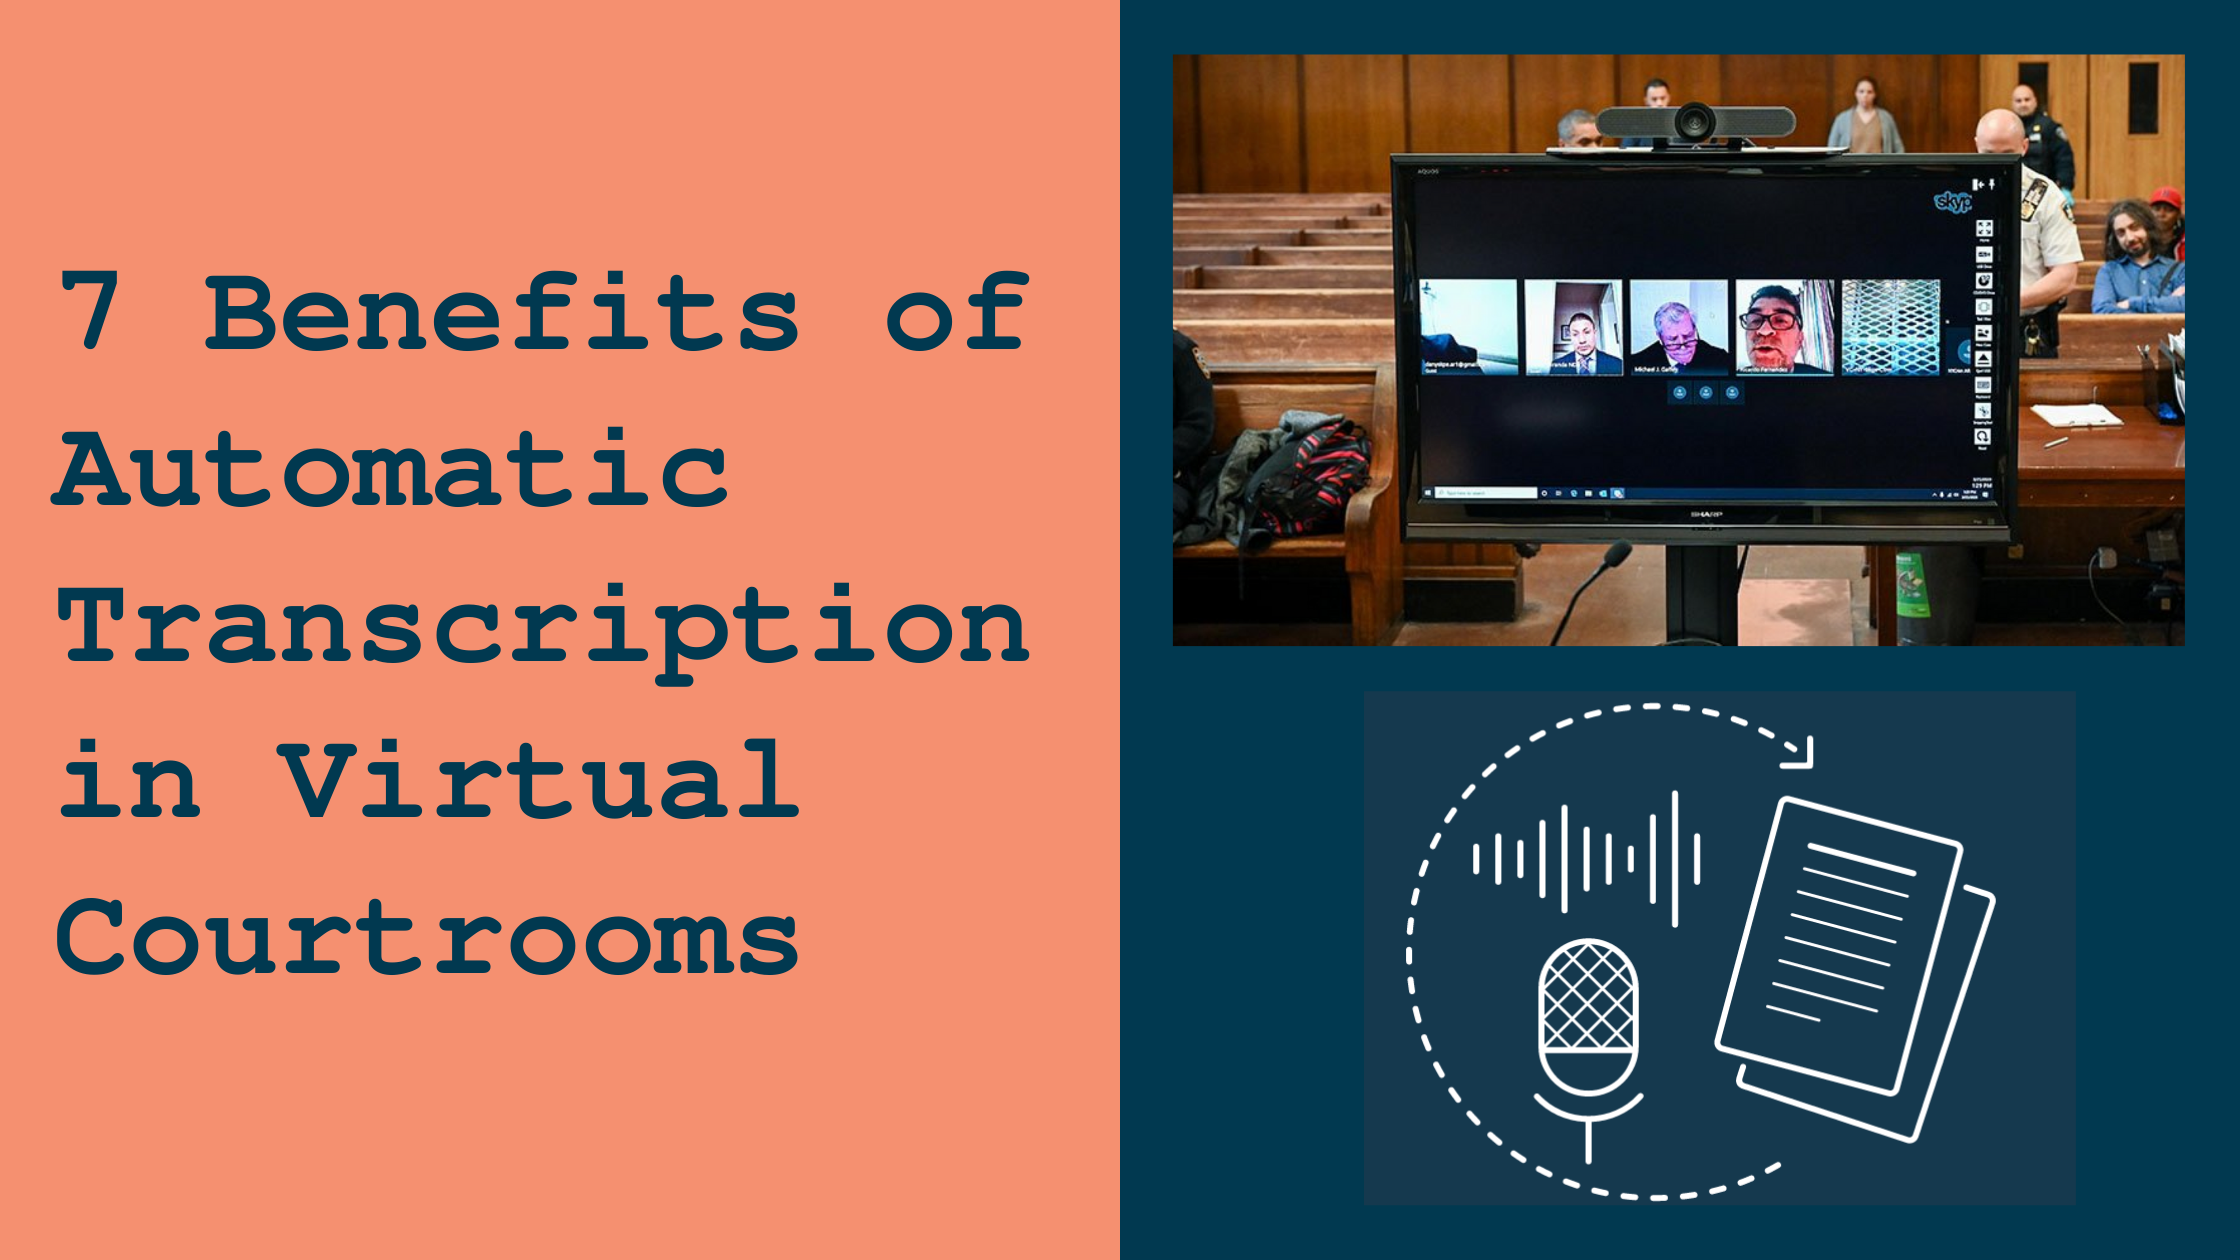 7 Benefits of Automatic Transcription in Virtual Courtrooms